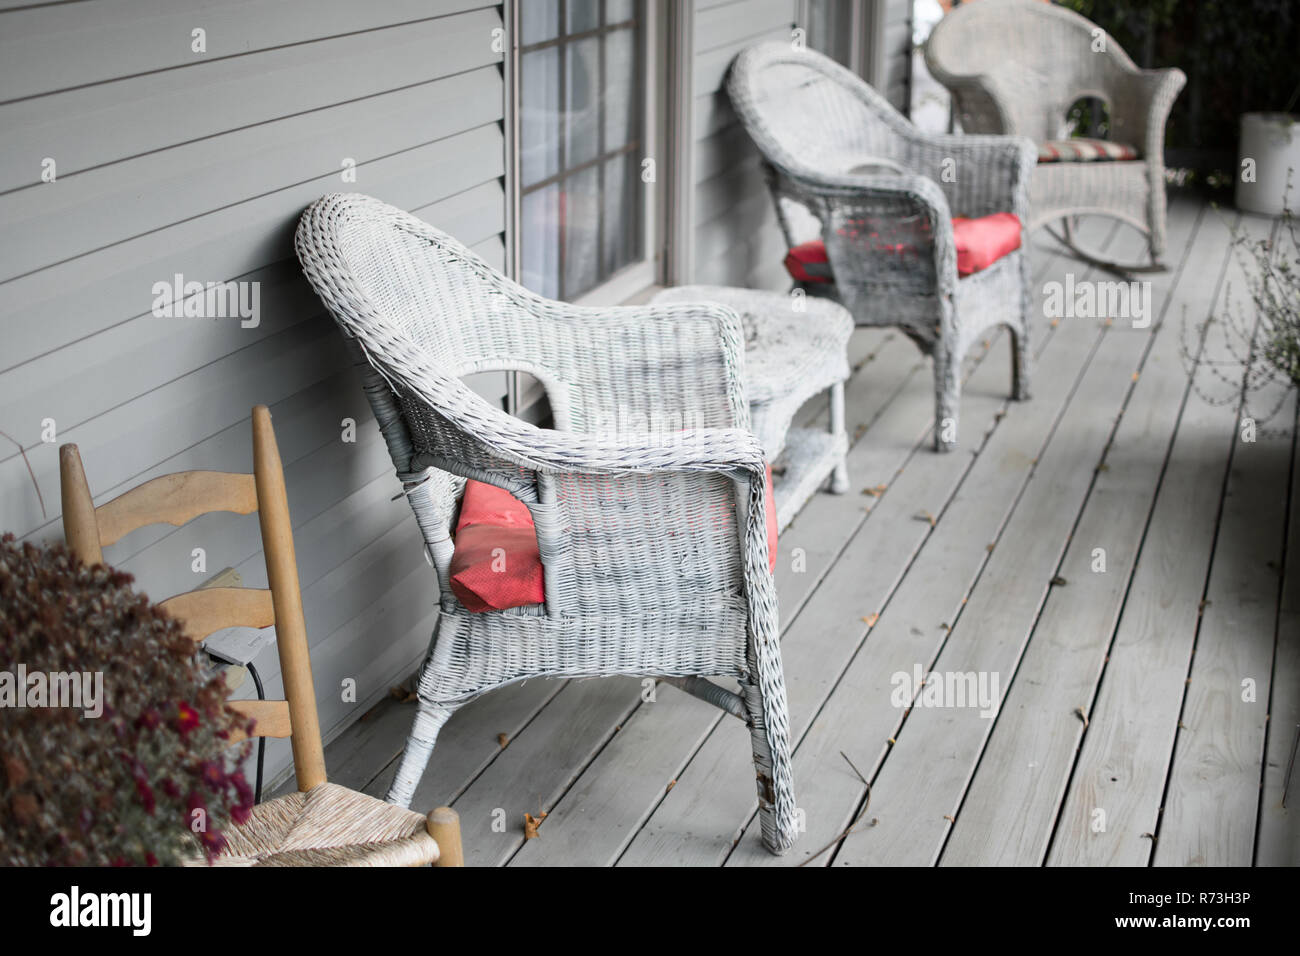 Wicker chairs on a gray porch. Stock Photo